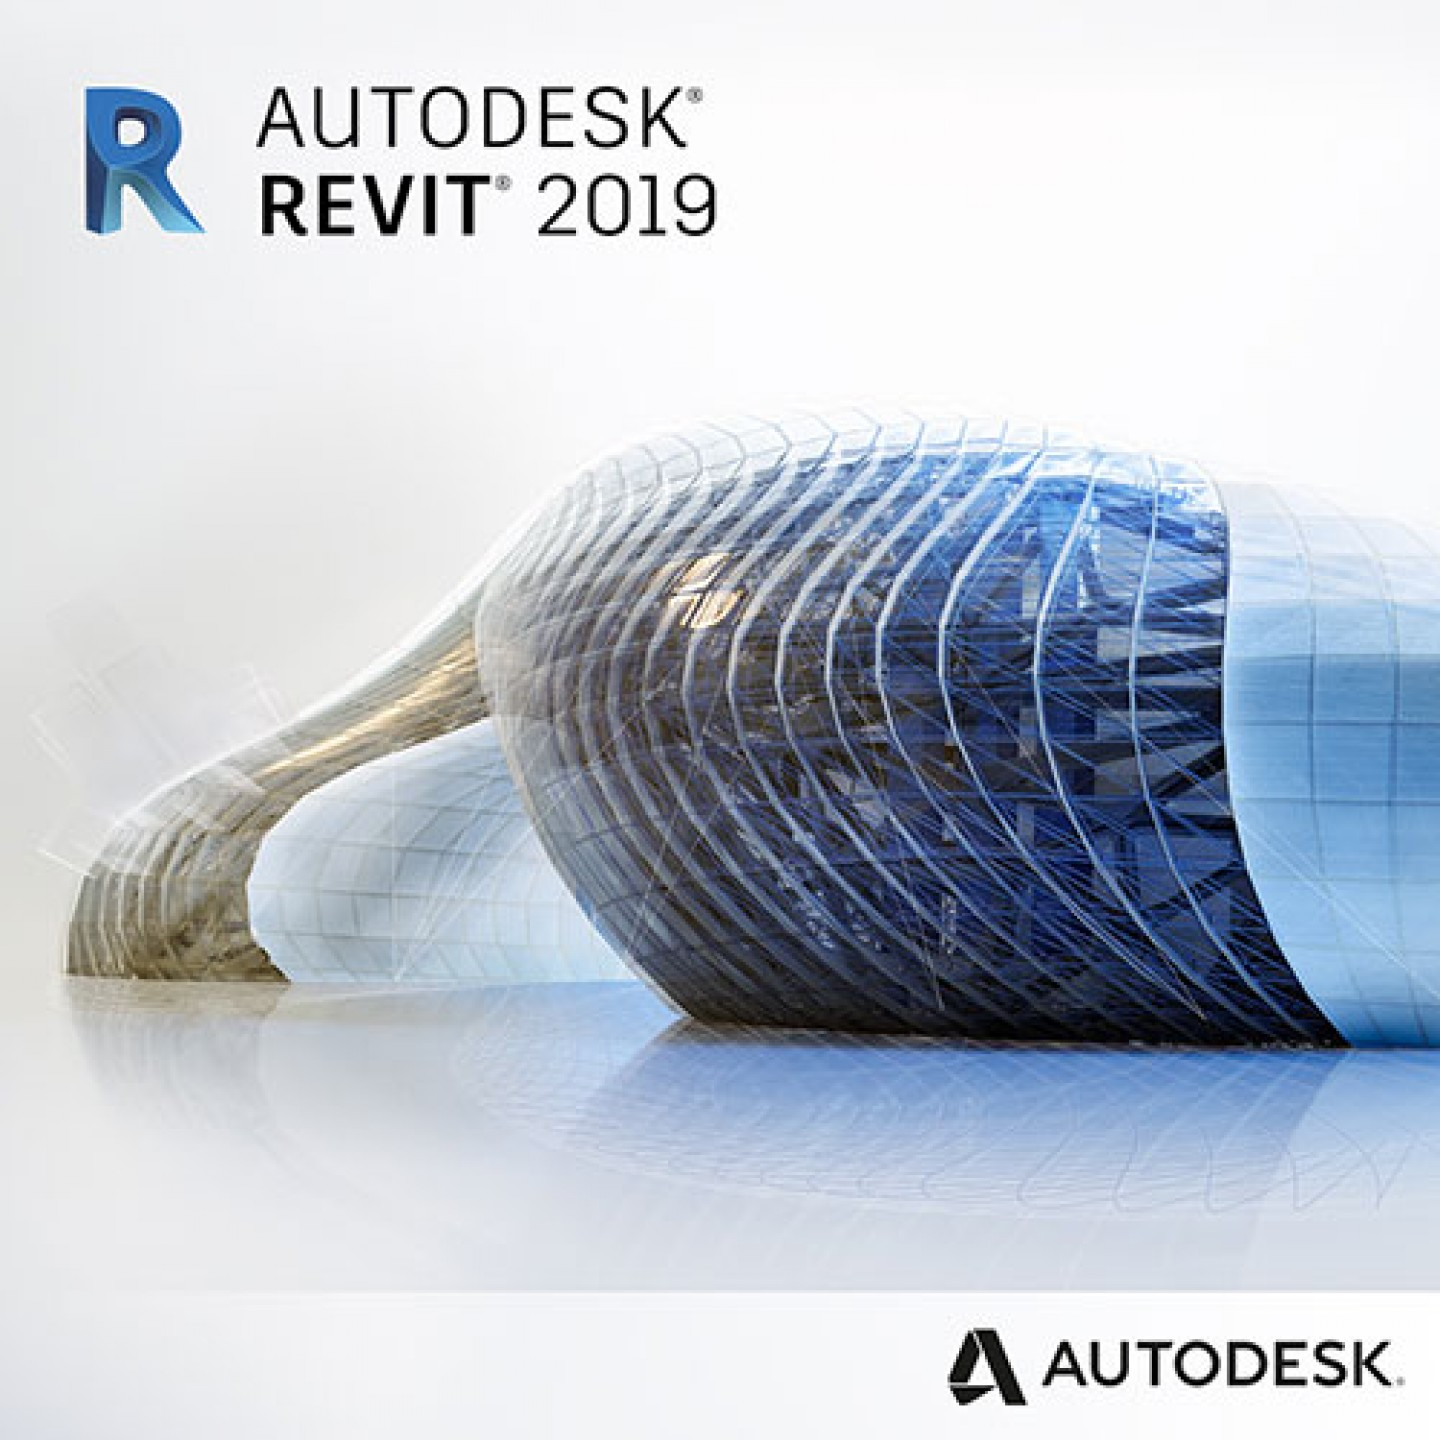 revit-2019-badge-500px2